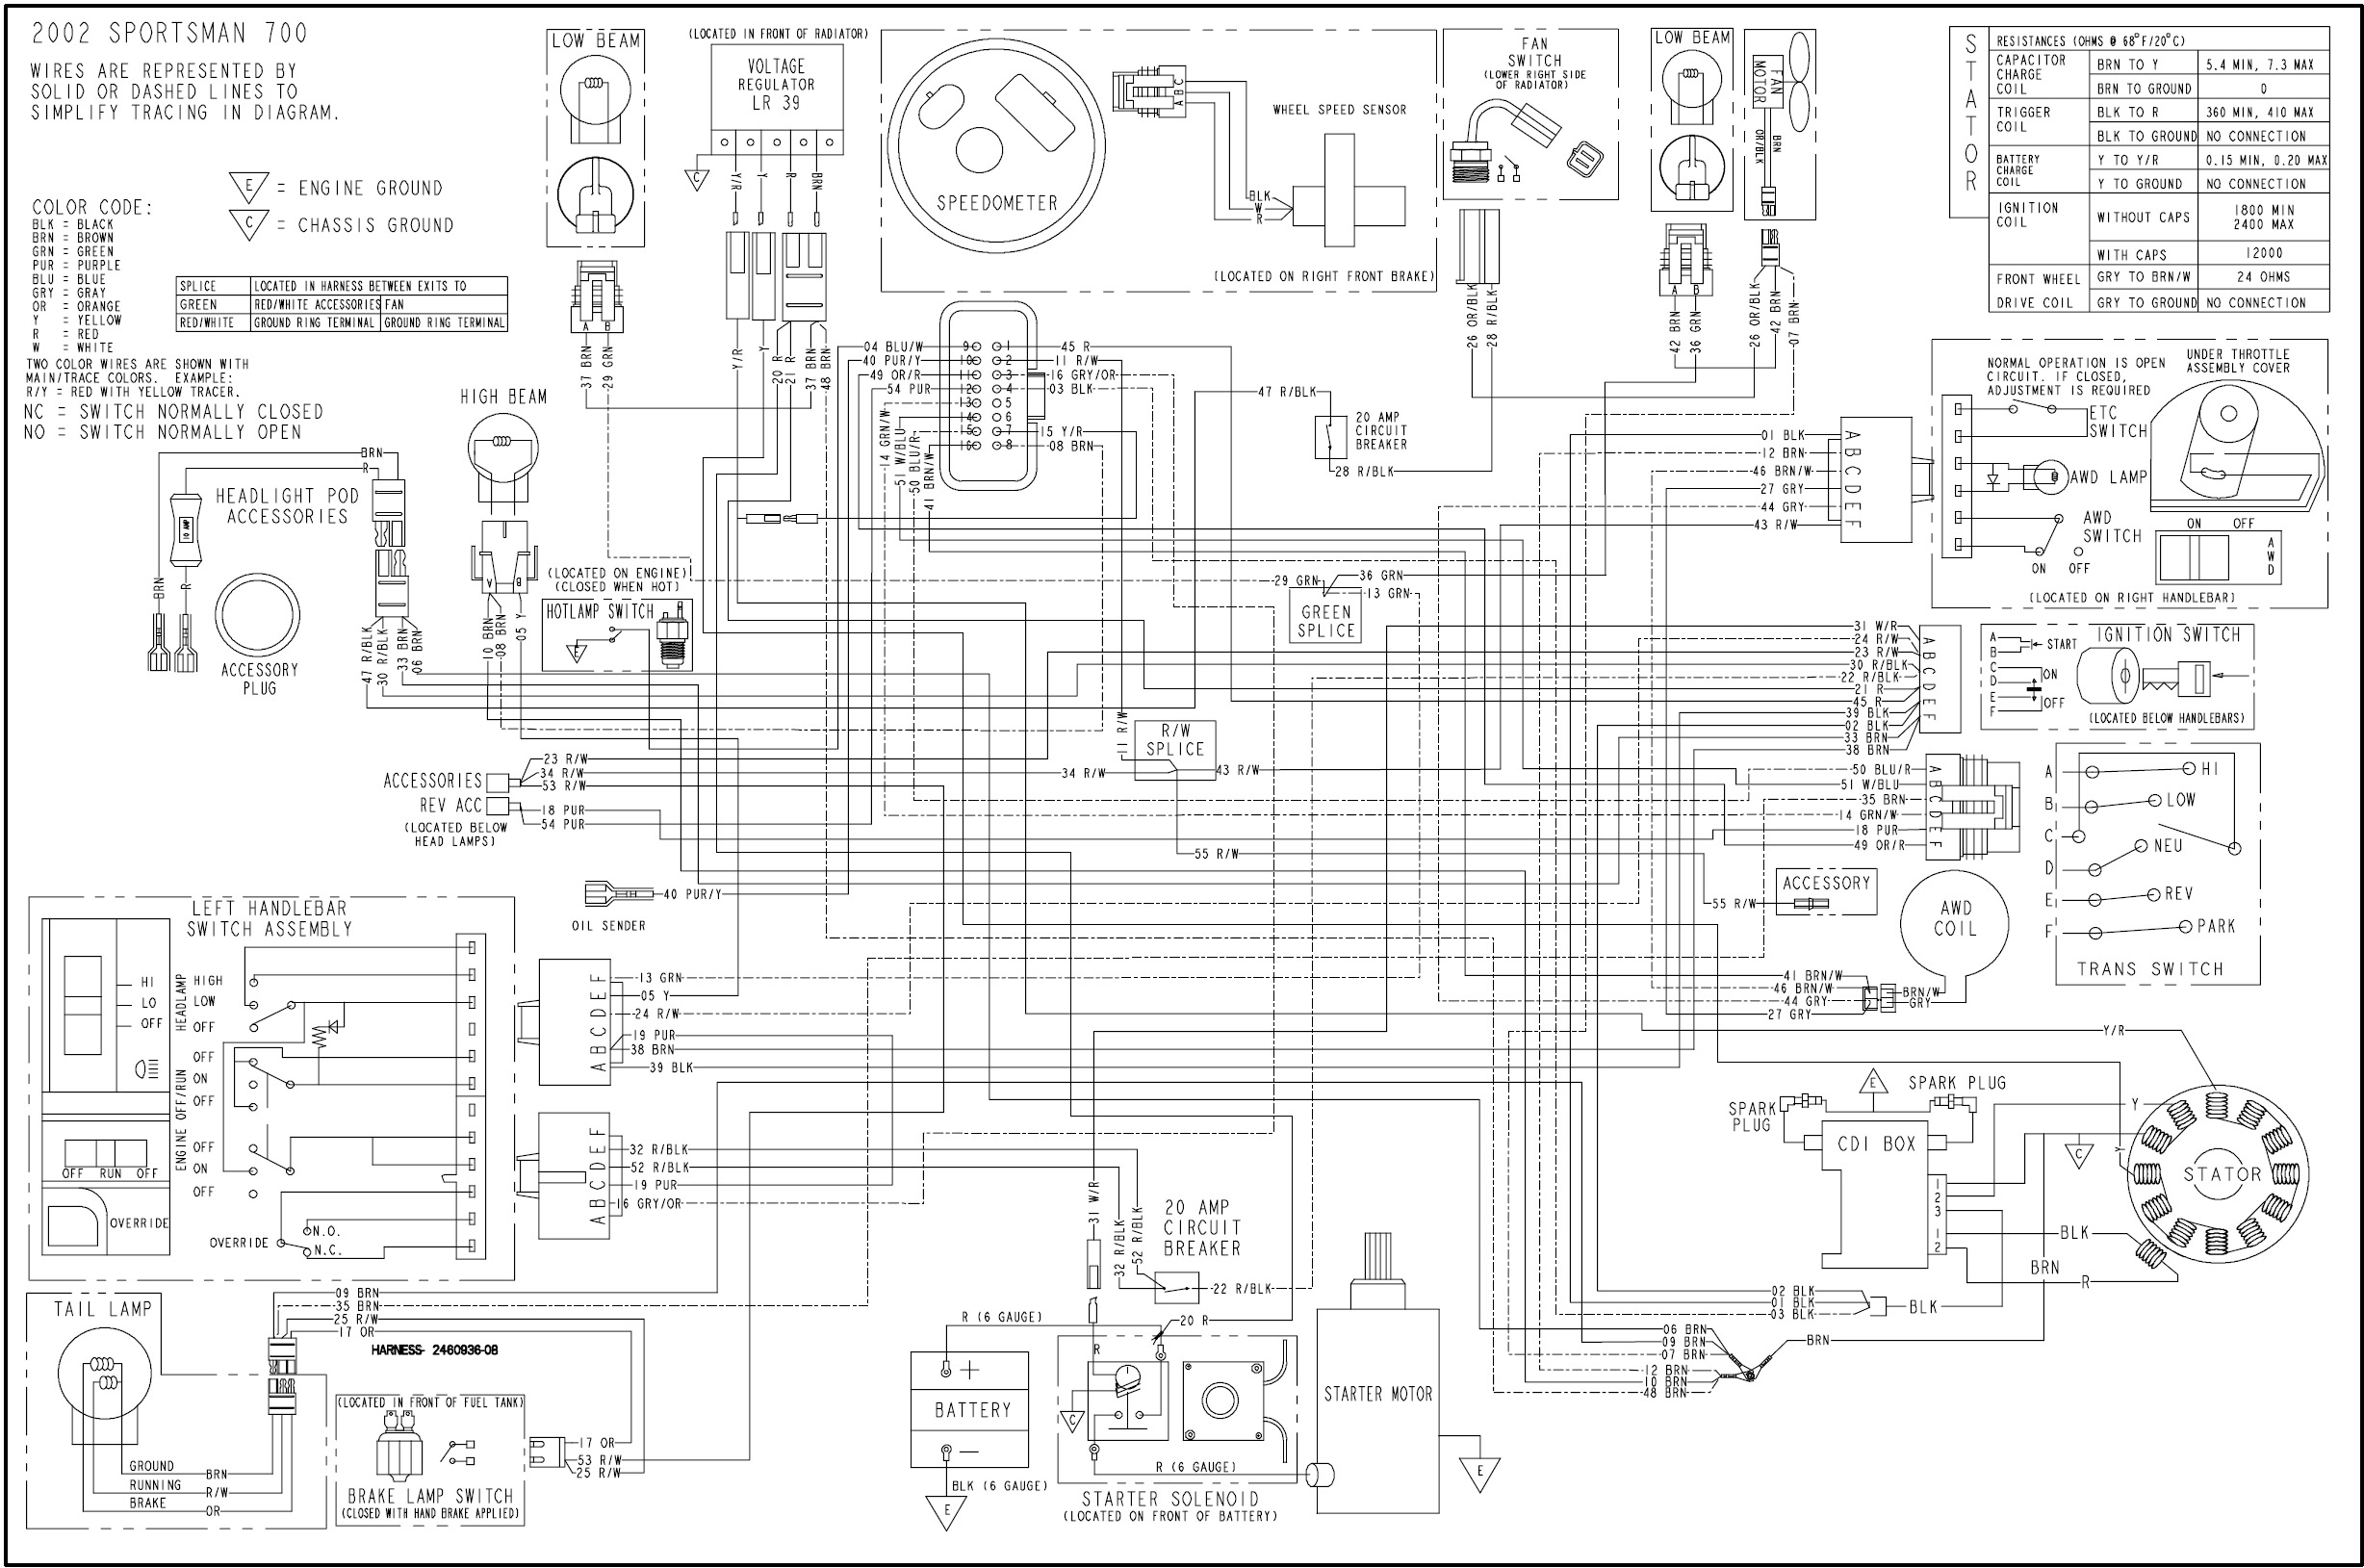 75754d1491234477 2001 sportsman 700 twin no start 2002_polaris_sportsman_700_wiring_diagram 2014 polaris outlaw 50 wiring diagram efcaviation com 2001 polaris 325 wiring diagram at honlapkeszites.co